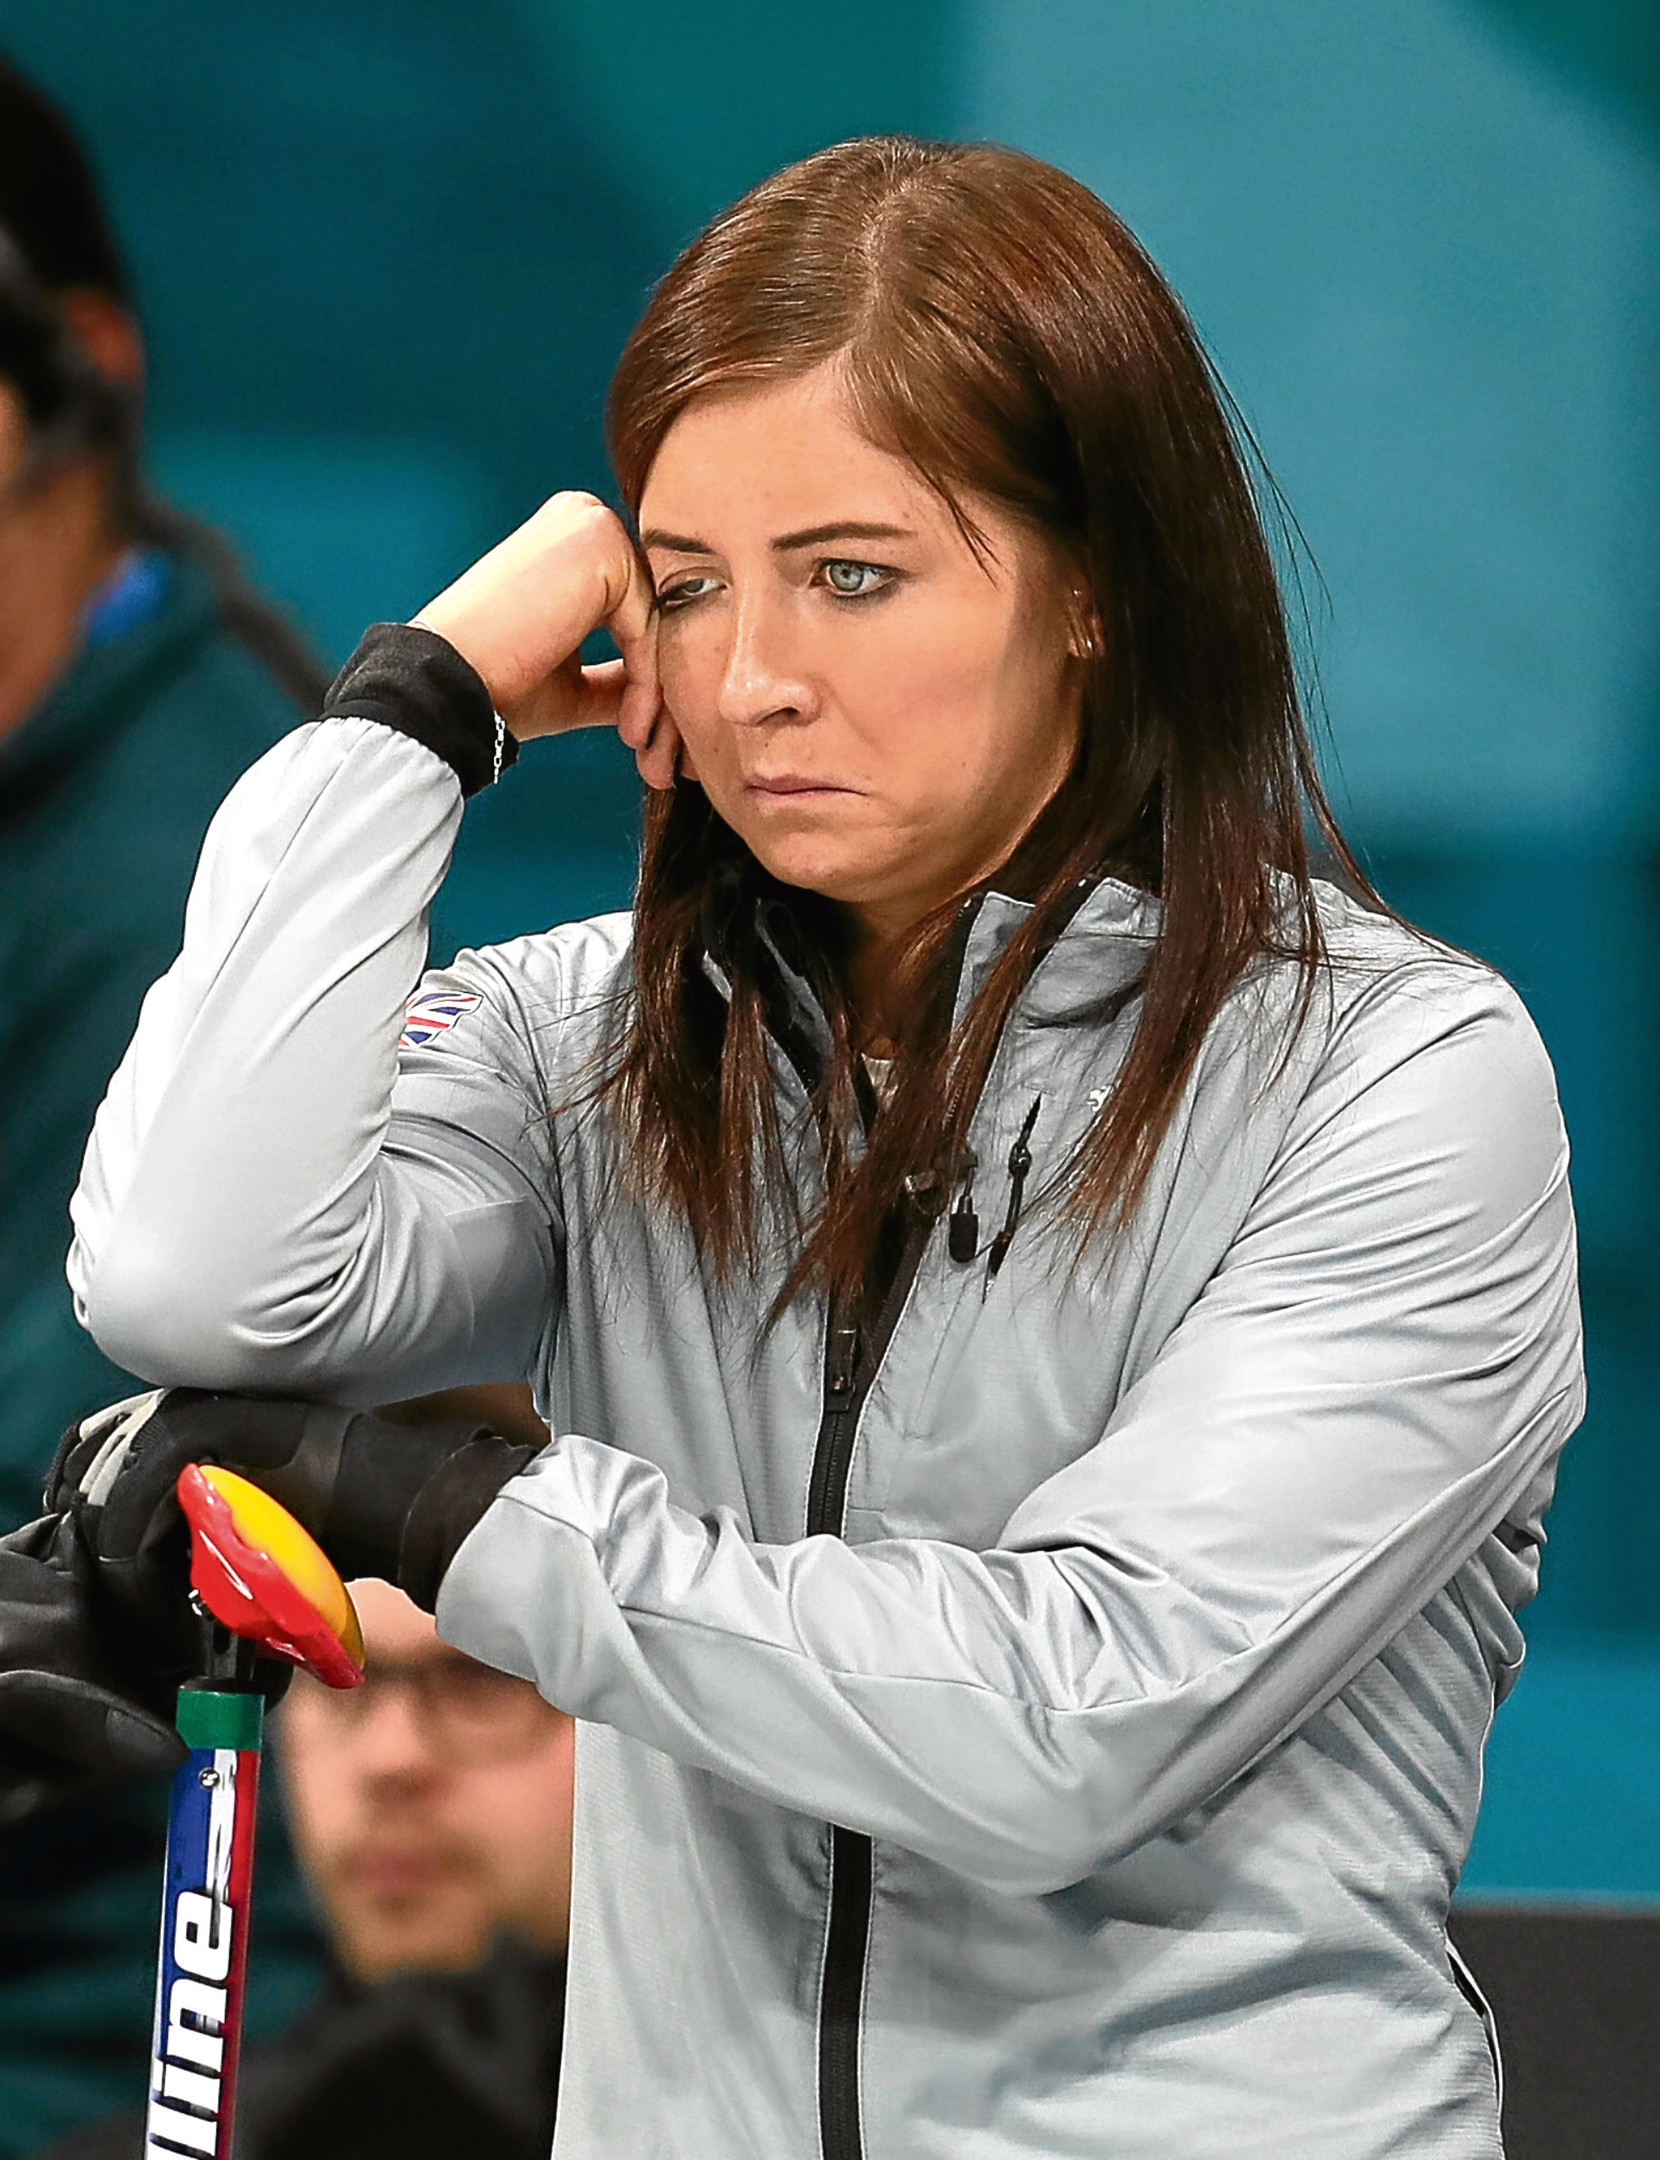 Great Britain skipper Eve Muirhead during the Women's Semi-Final against Sweden at the Gangneung Curling Centre during day fourteen of the PyeongChang 2018 Winter Olympic Games in South Korea. PRESS ASSOCIATION Photo. Picture date: Friday February 23, 2018. See PA story OLYMPICS Curling. Photo credit should read: Mike Egerton/PA Wire. RESTRICTIONS: Editorial use only. No commercial use